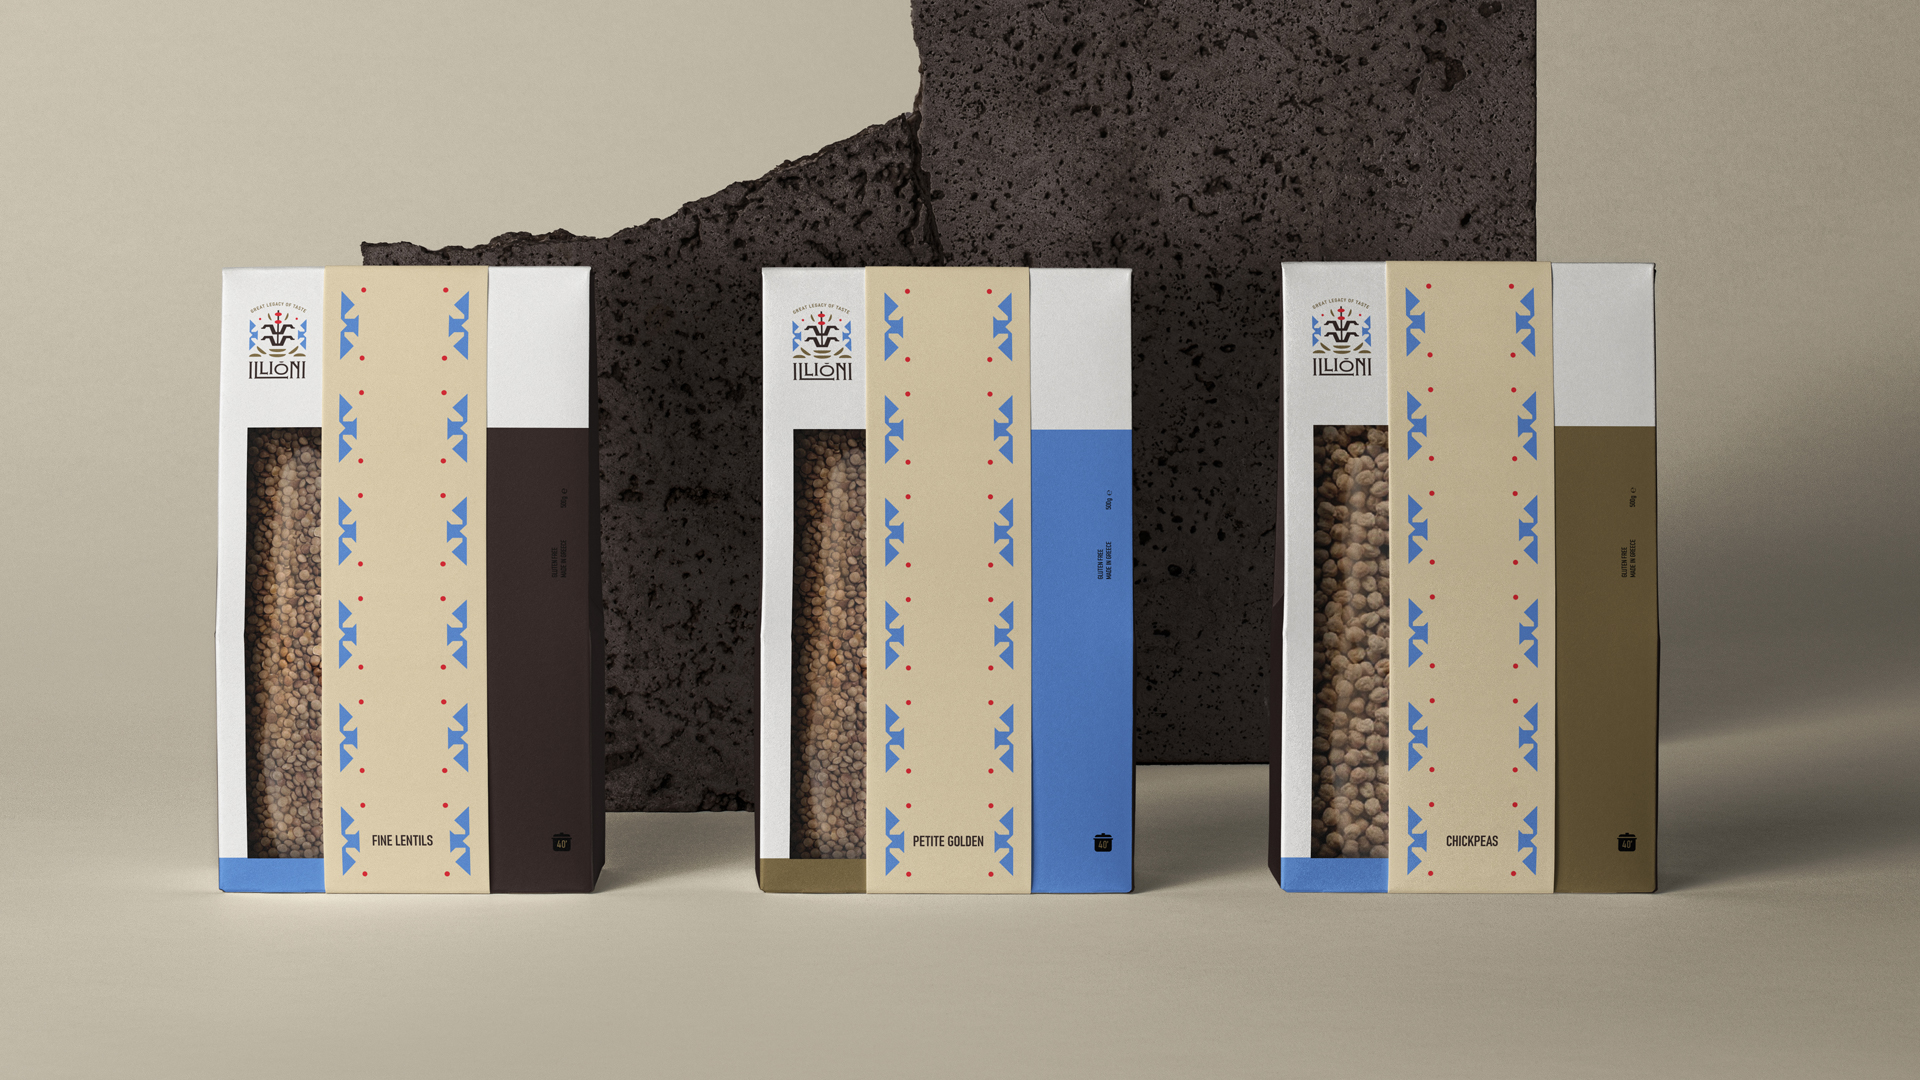 Maria Delliou Creates Identity for Illioni